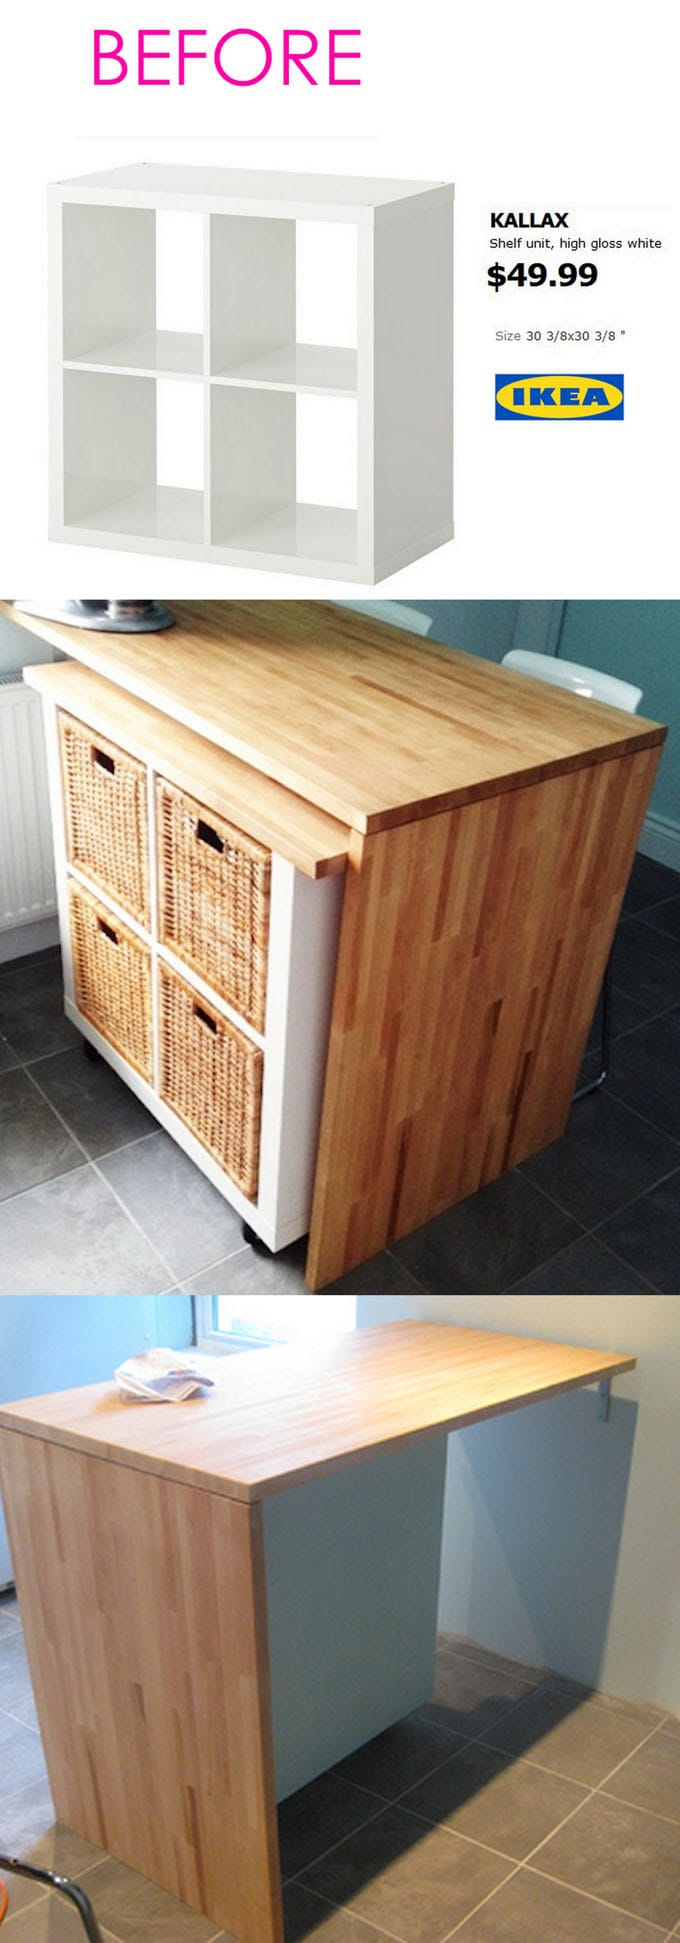 Similar To The First One, This Ikea Hack Kitchen Island / Bar Is Built Over  The Portable Kallax Unit. ( The Original Website Sketchystyles.com Has  Expired.